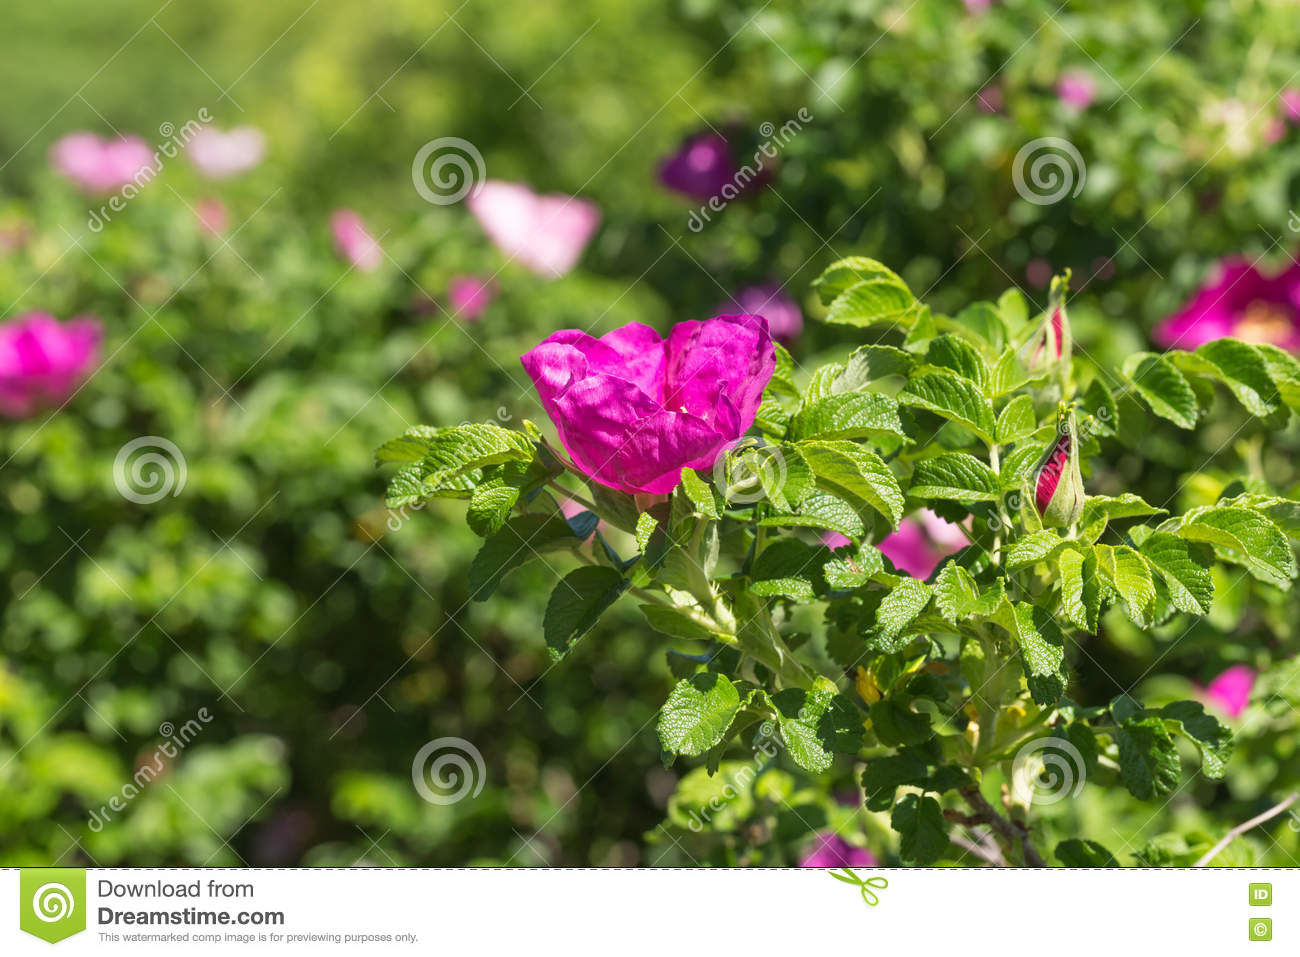 Shrubs with purple flowers at end of branch - Purple Flower In Green Shrubs